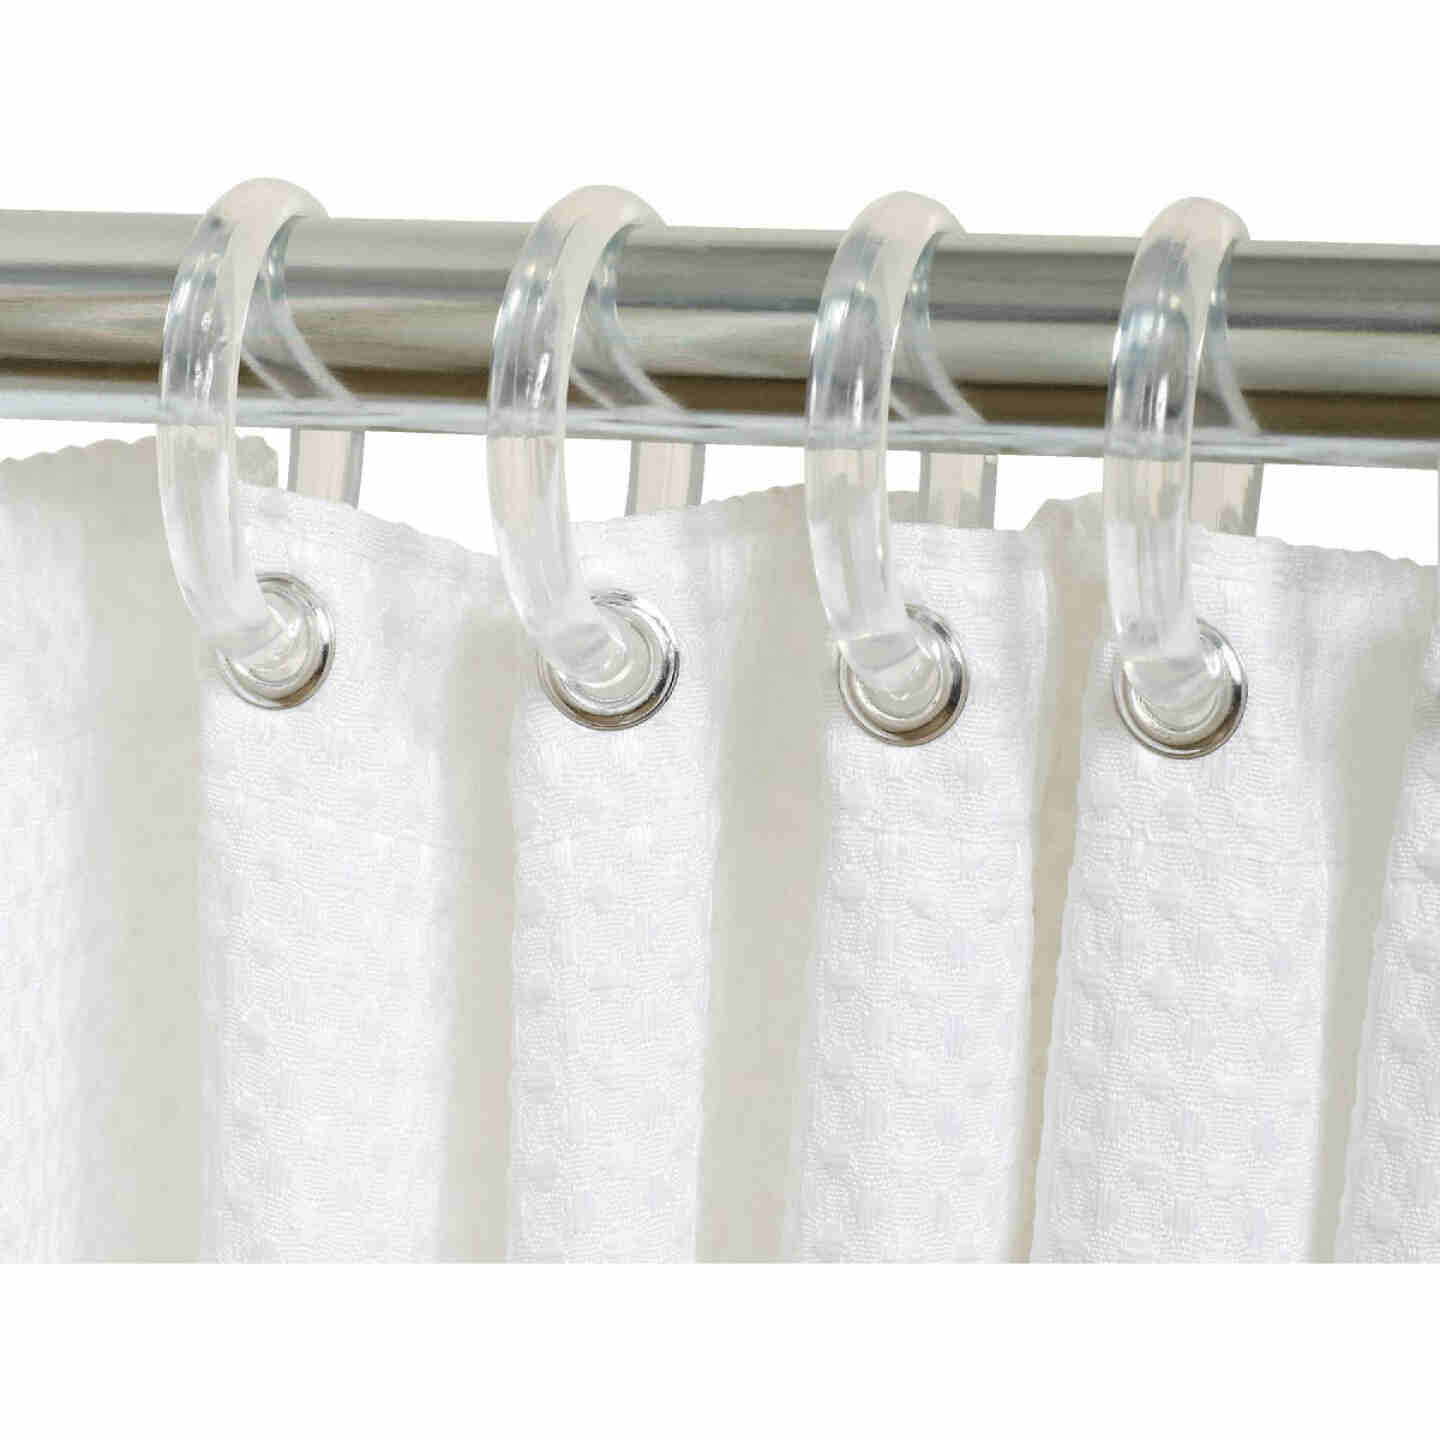 Zenith Zenna Home Clear Plastic Shower Curtain Ring (12 Count) Image 1